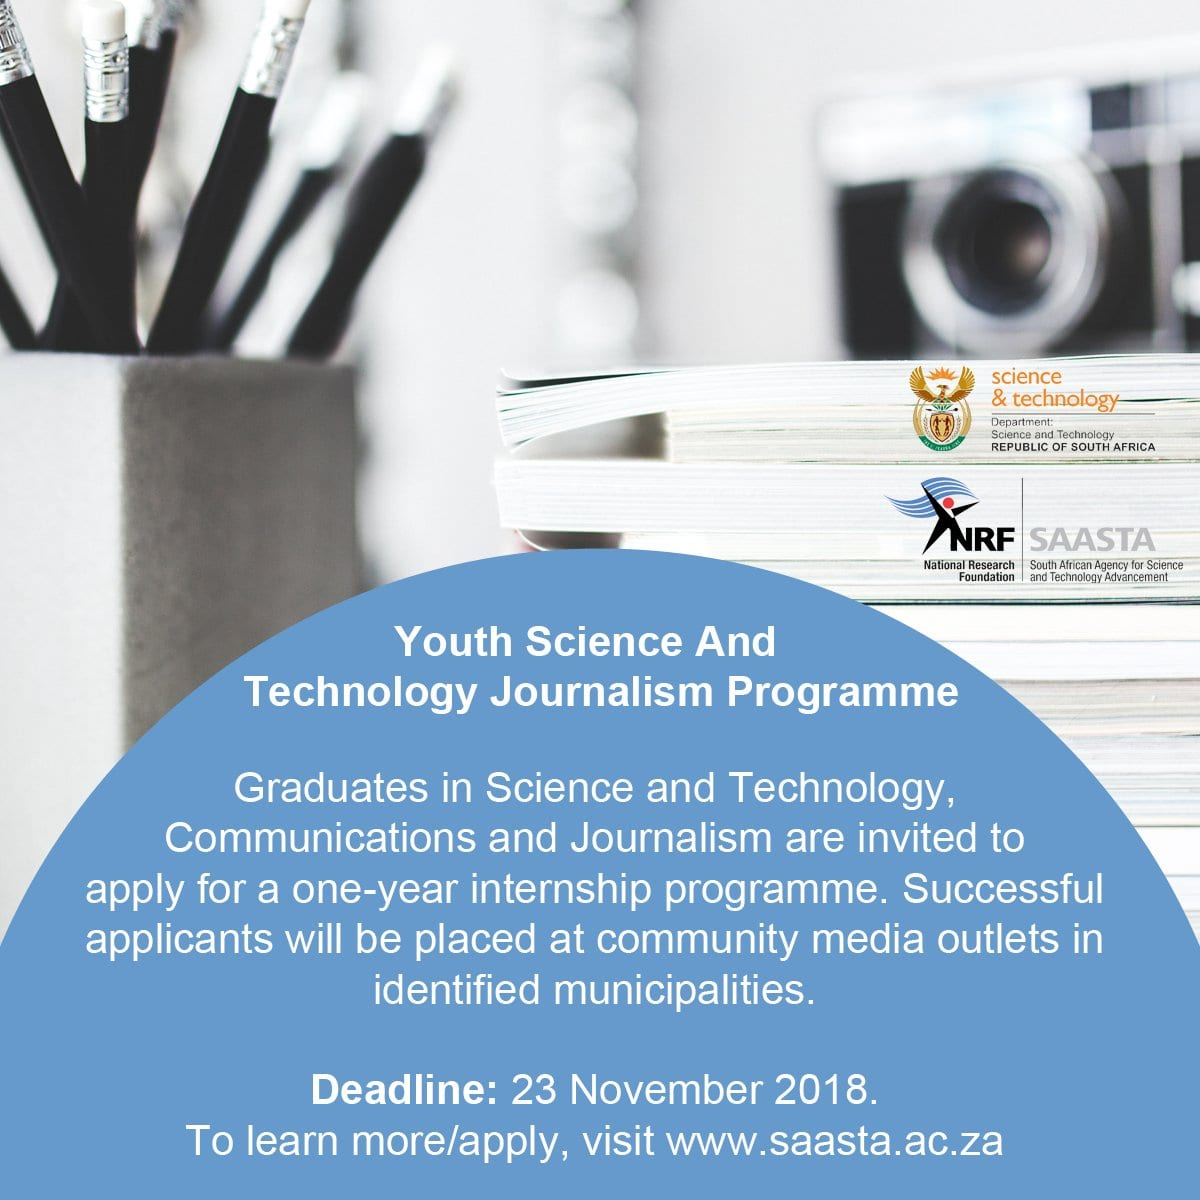 The Department of Science and Innovation (DST) Youth Science & & Innovation Journalism 1 year Internship Program 2018/2019 for young South Africans